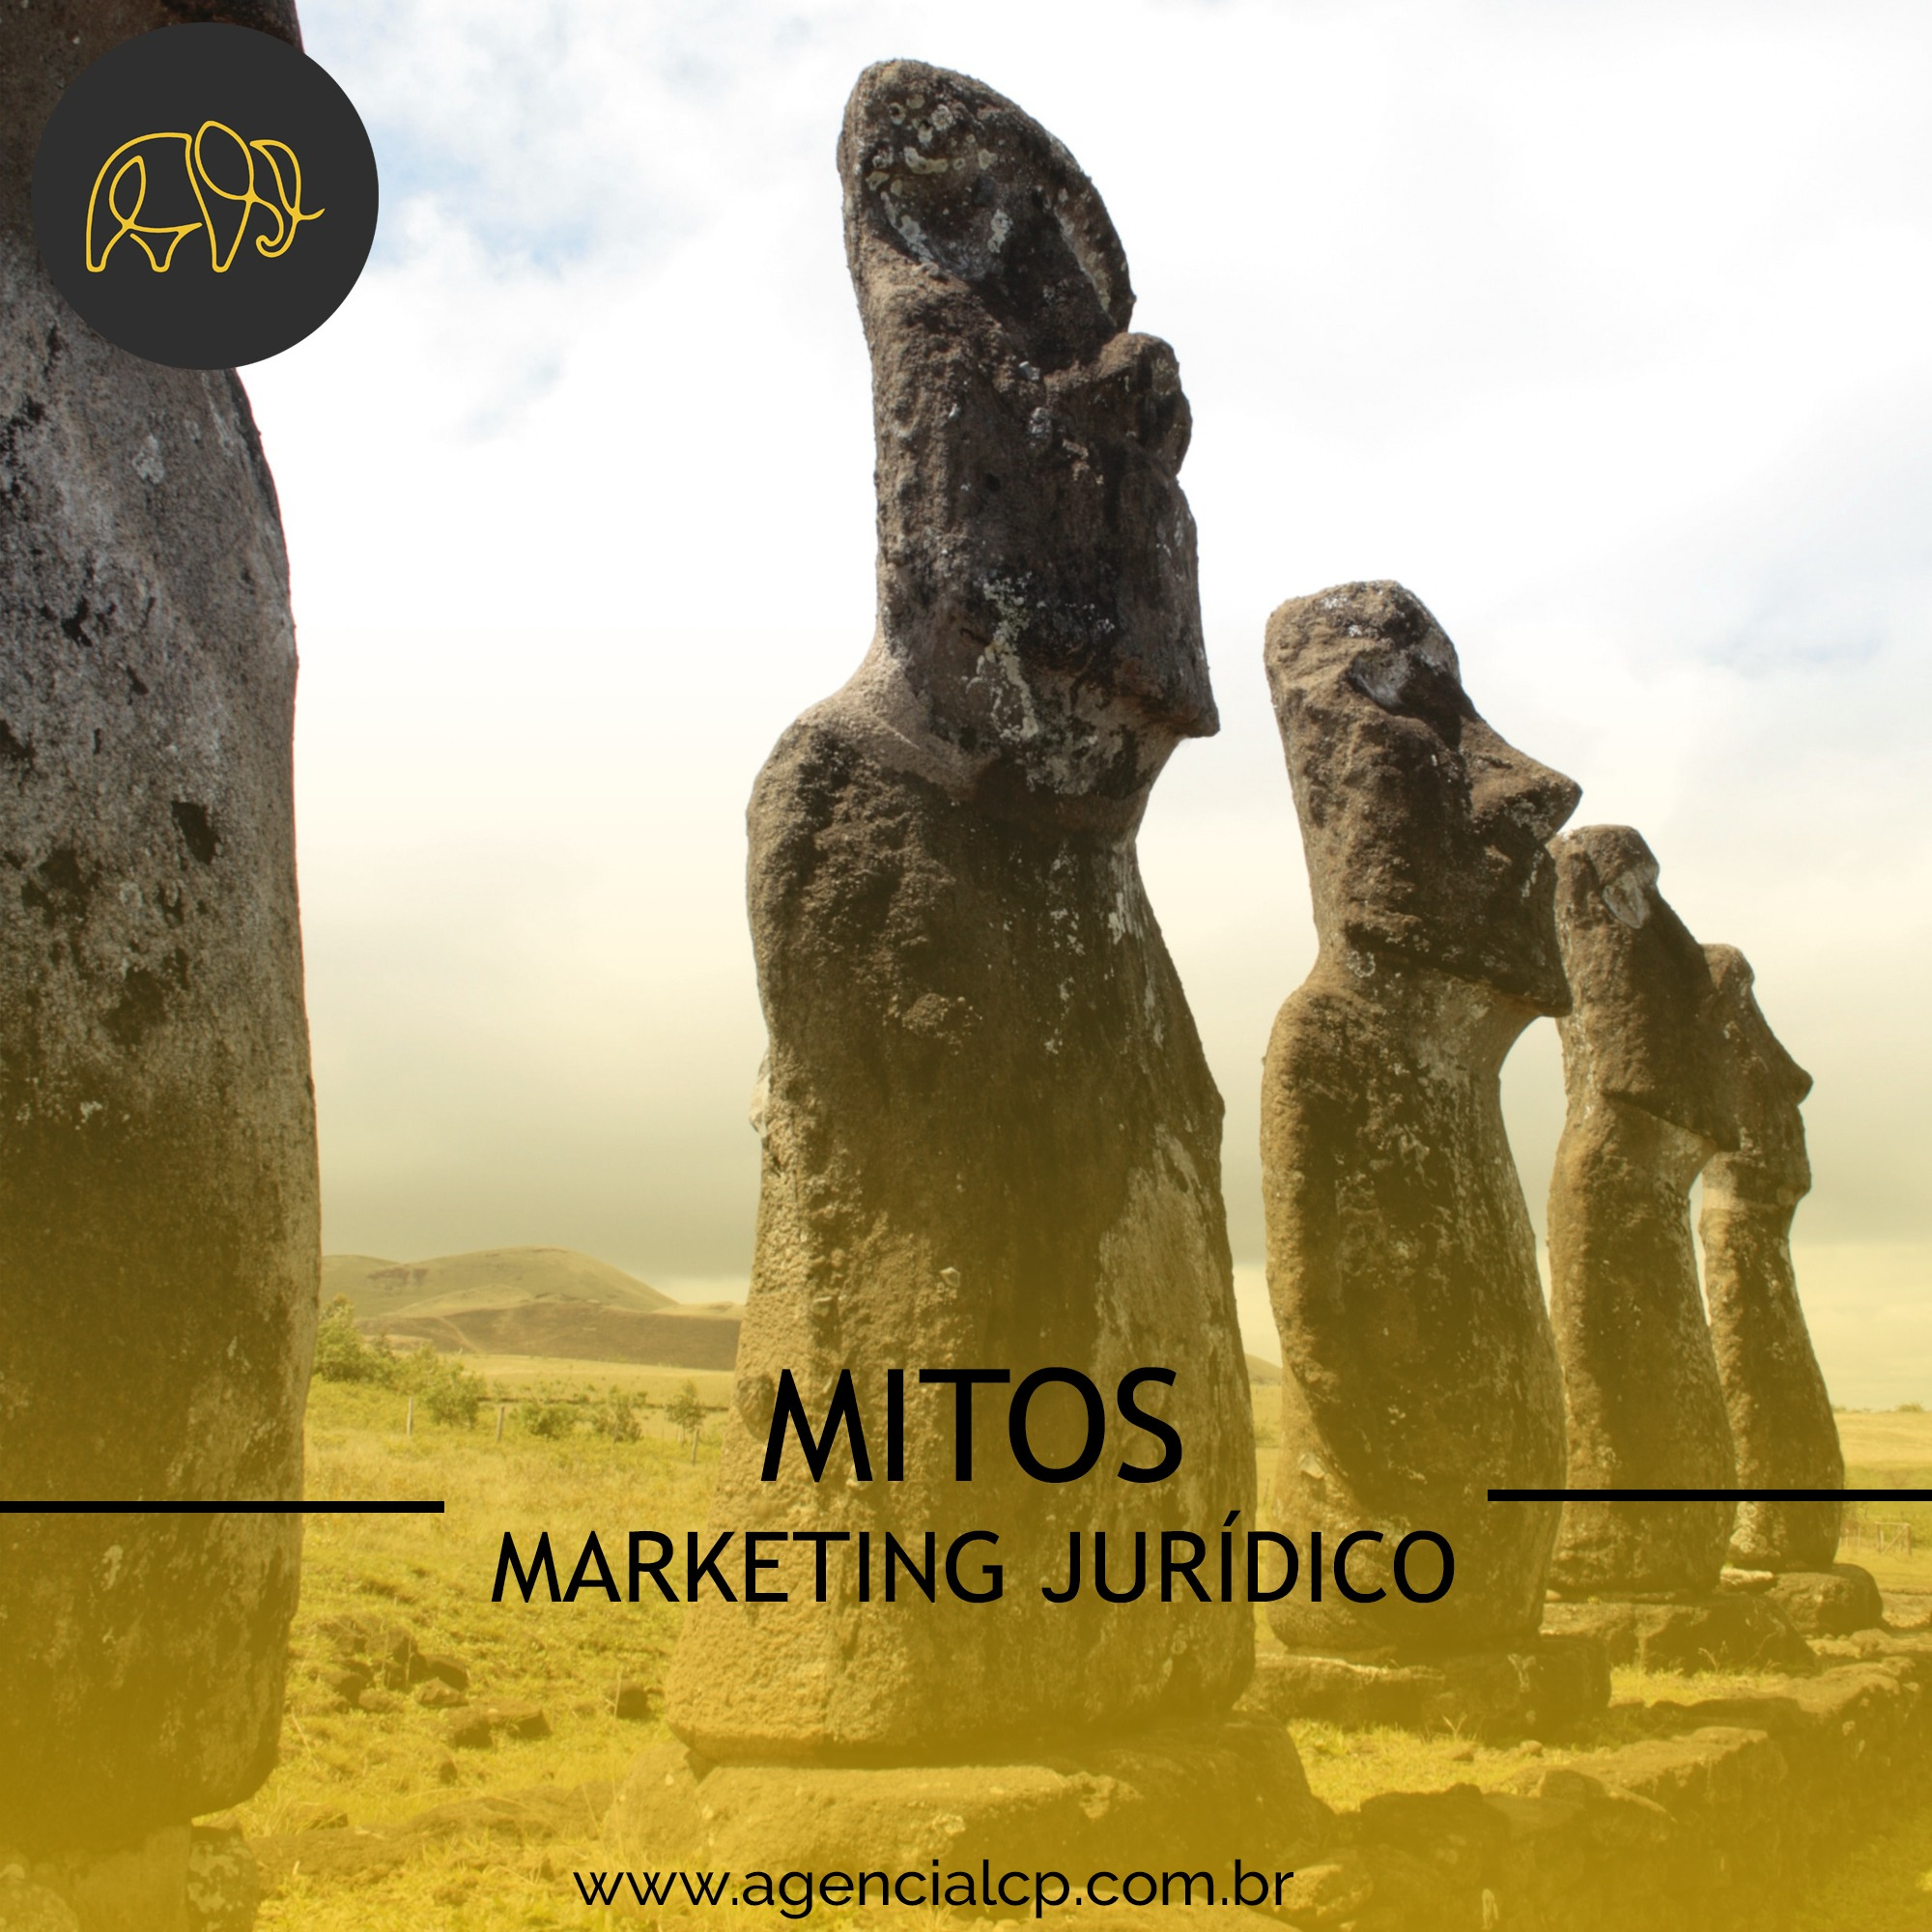 Mitos do Marketing Jurídico